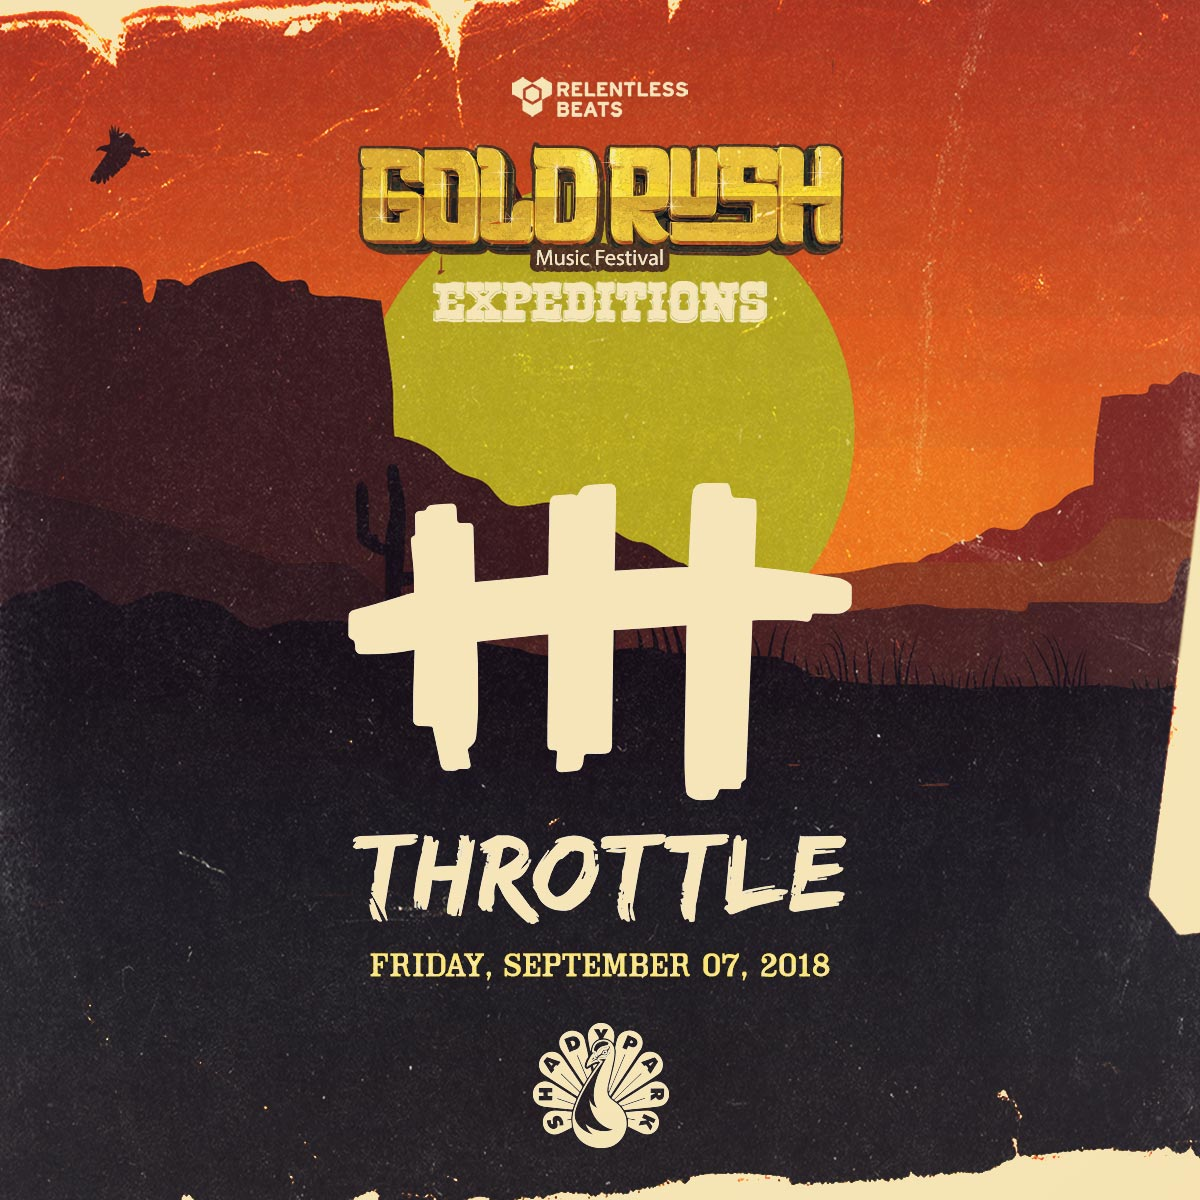 Flyer for Throttle - Goldrush Expeditions